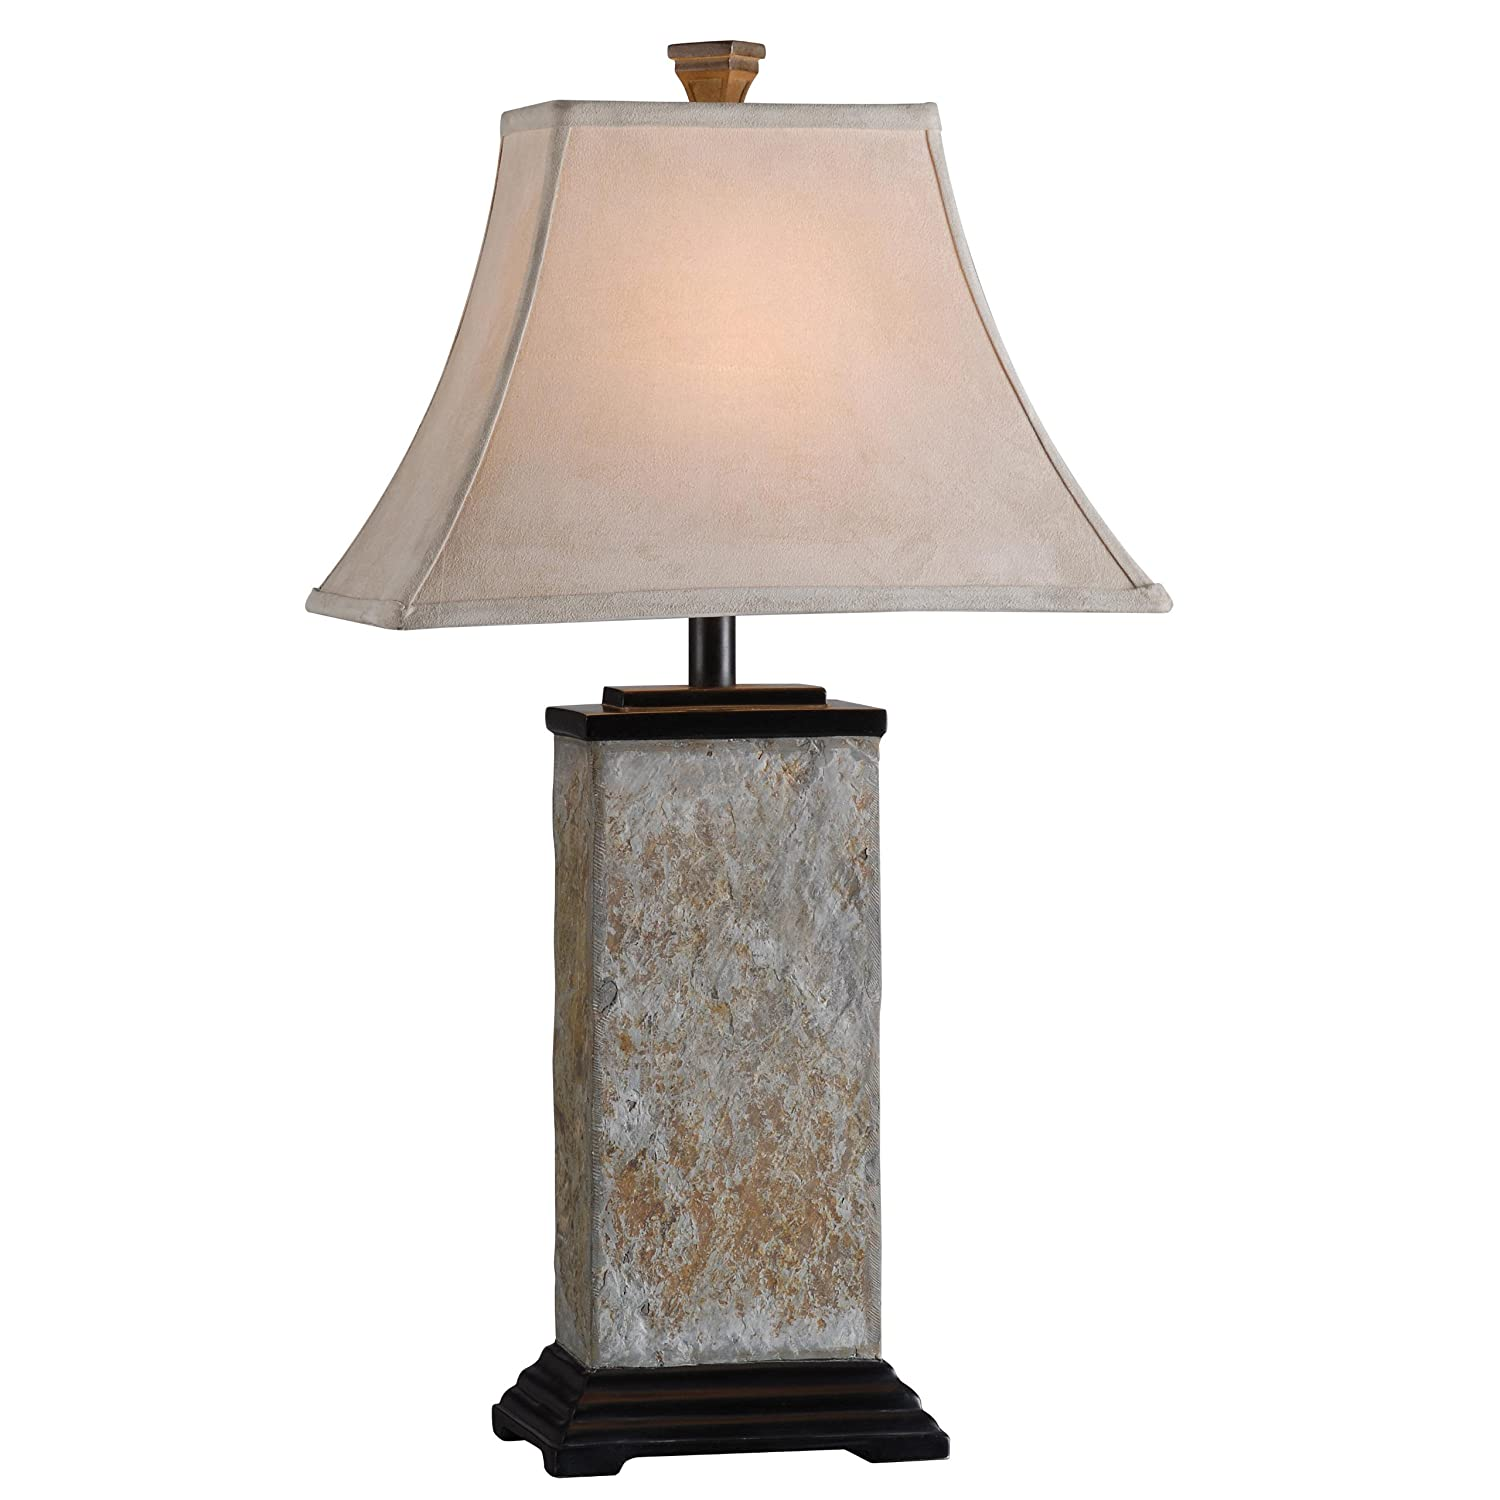 Good Kenroy Home Bennington Table Lamp With Natural Slate Finish     Amazon.com